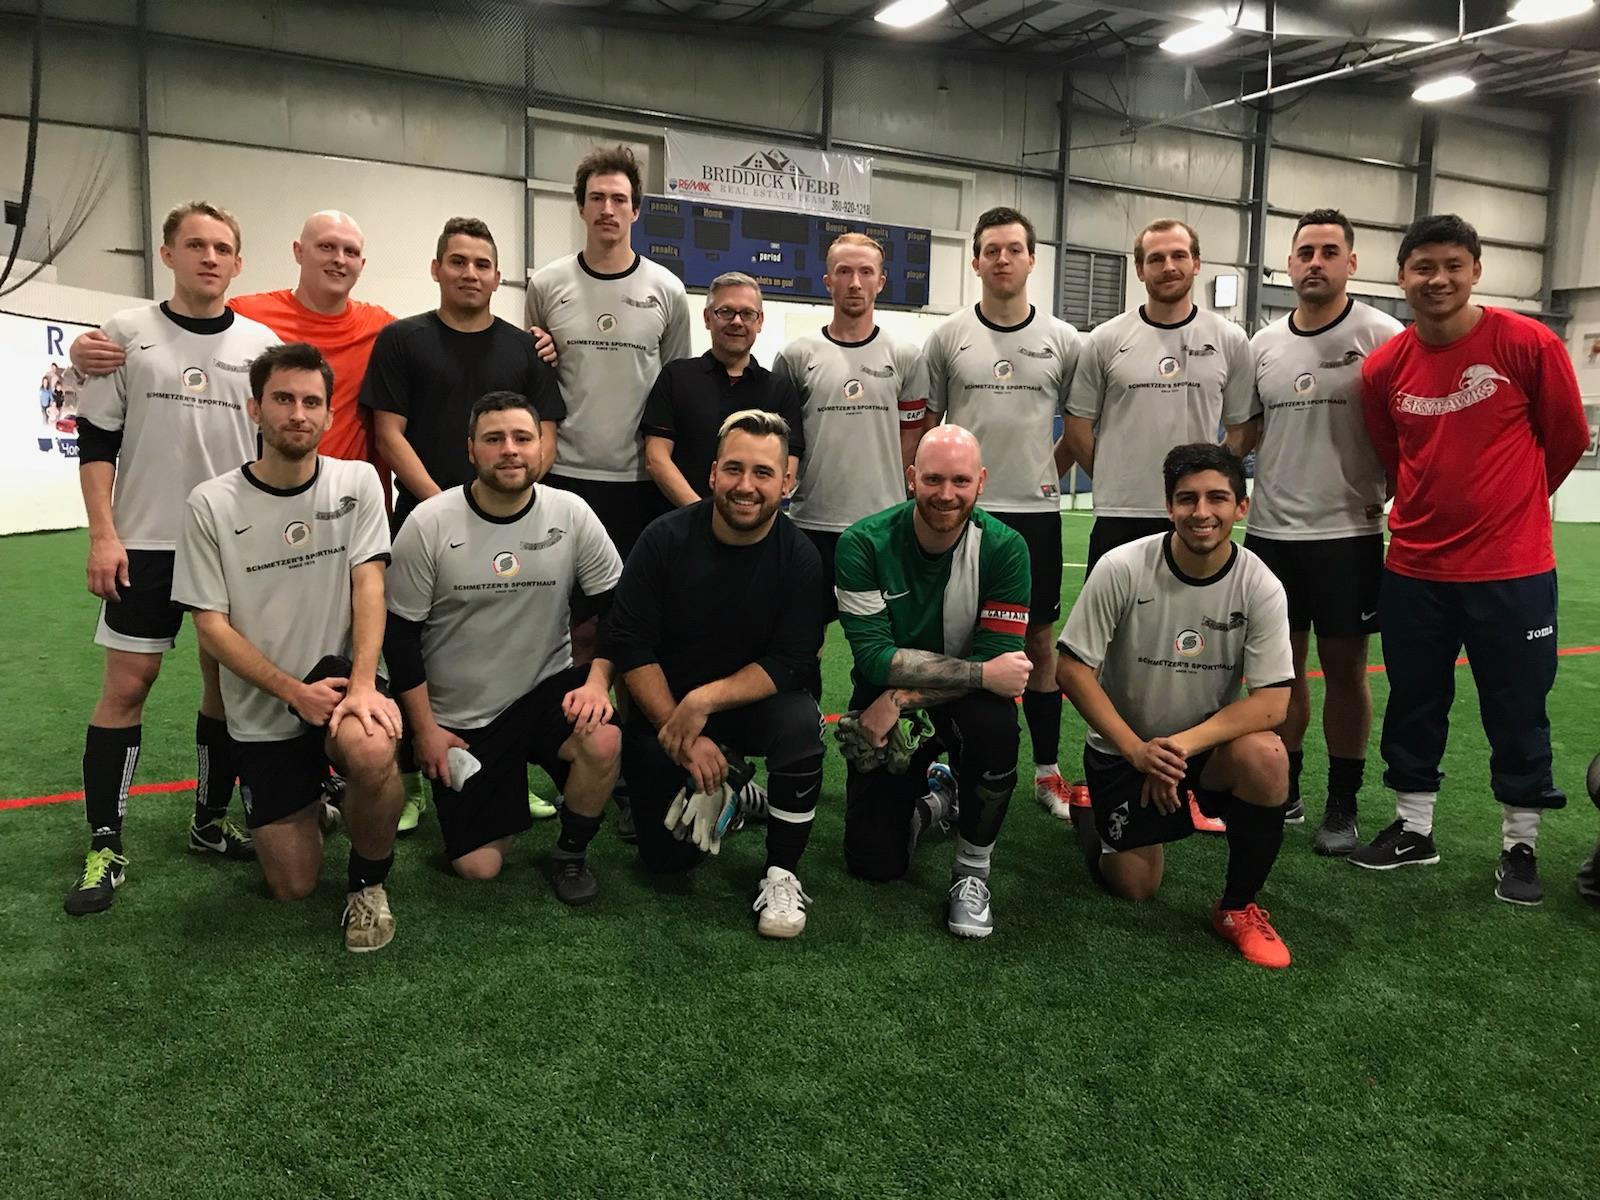 7fd56c0da The Snohomish Skyhawks will host open tryouts at the Snohomish Soccer Dome  on Saturday, October 6th and Sunday, October 7th. Saturday's session is set  for ...